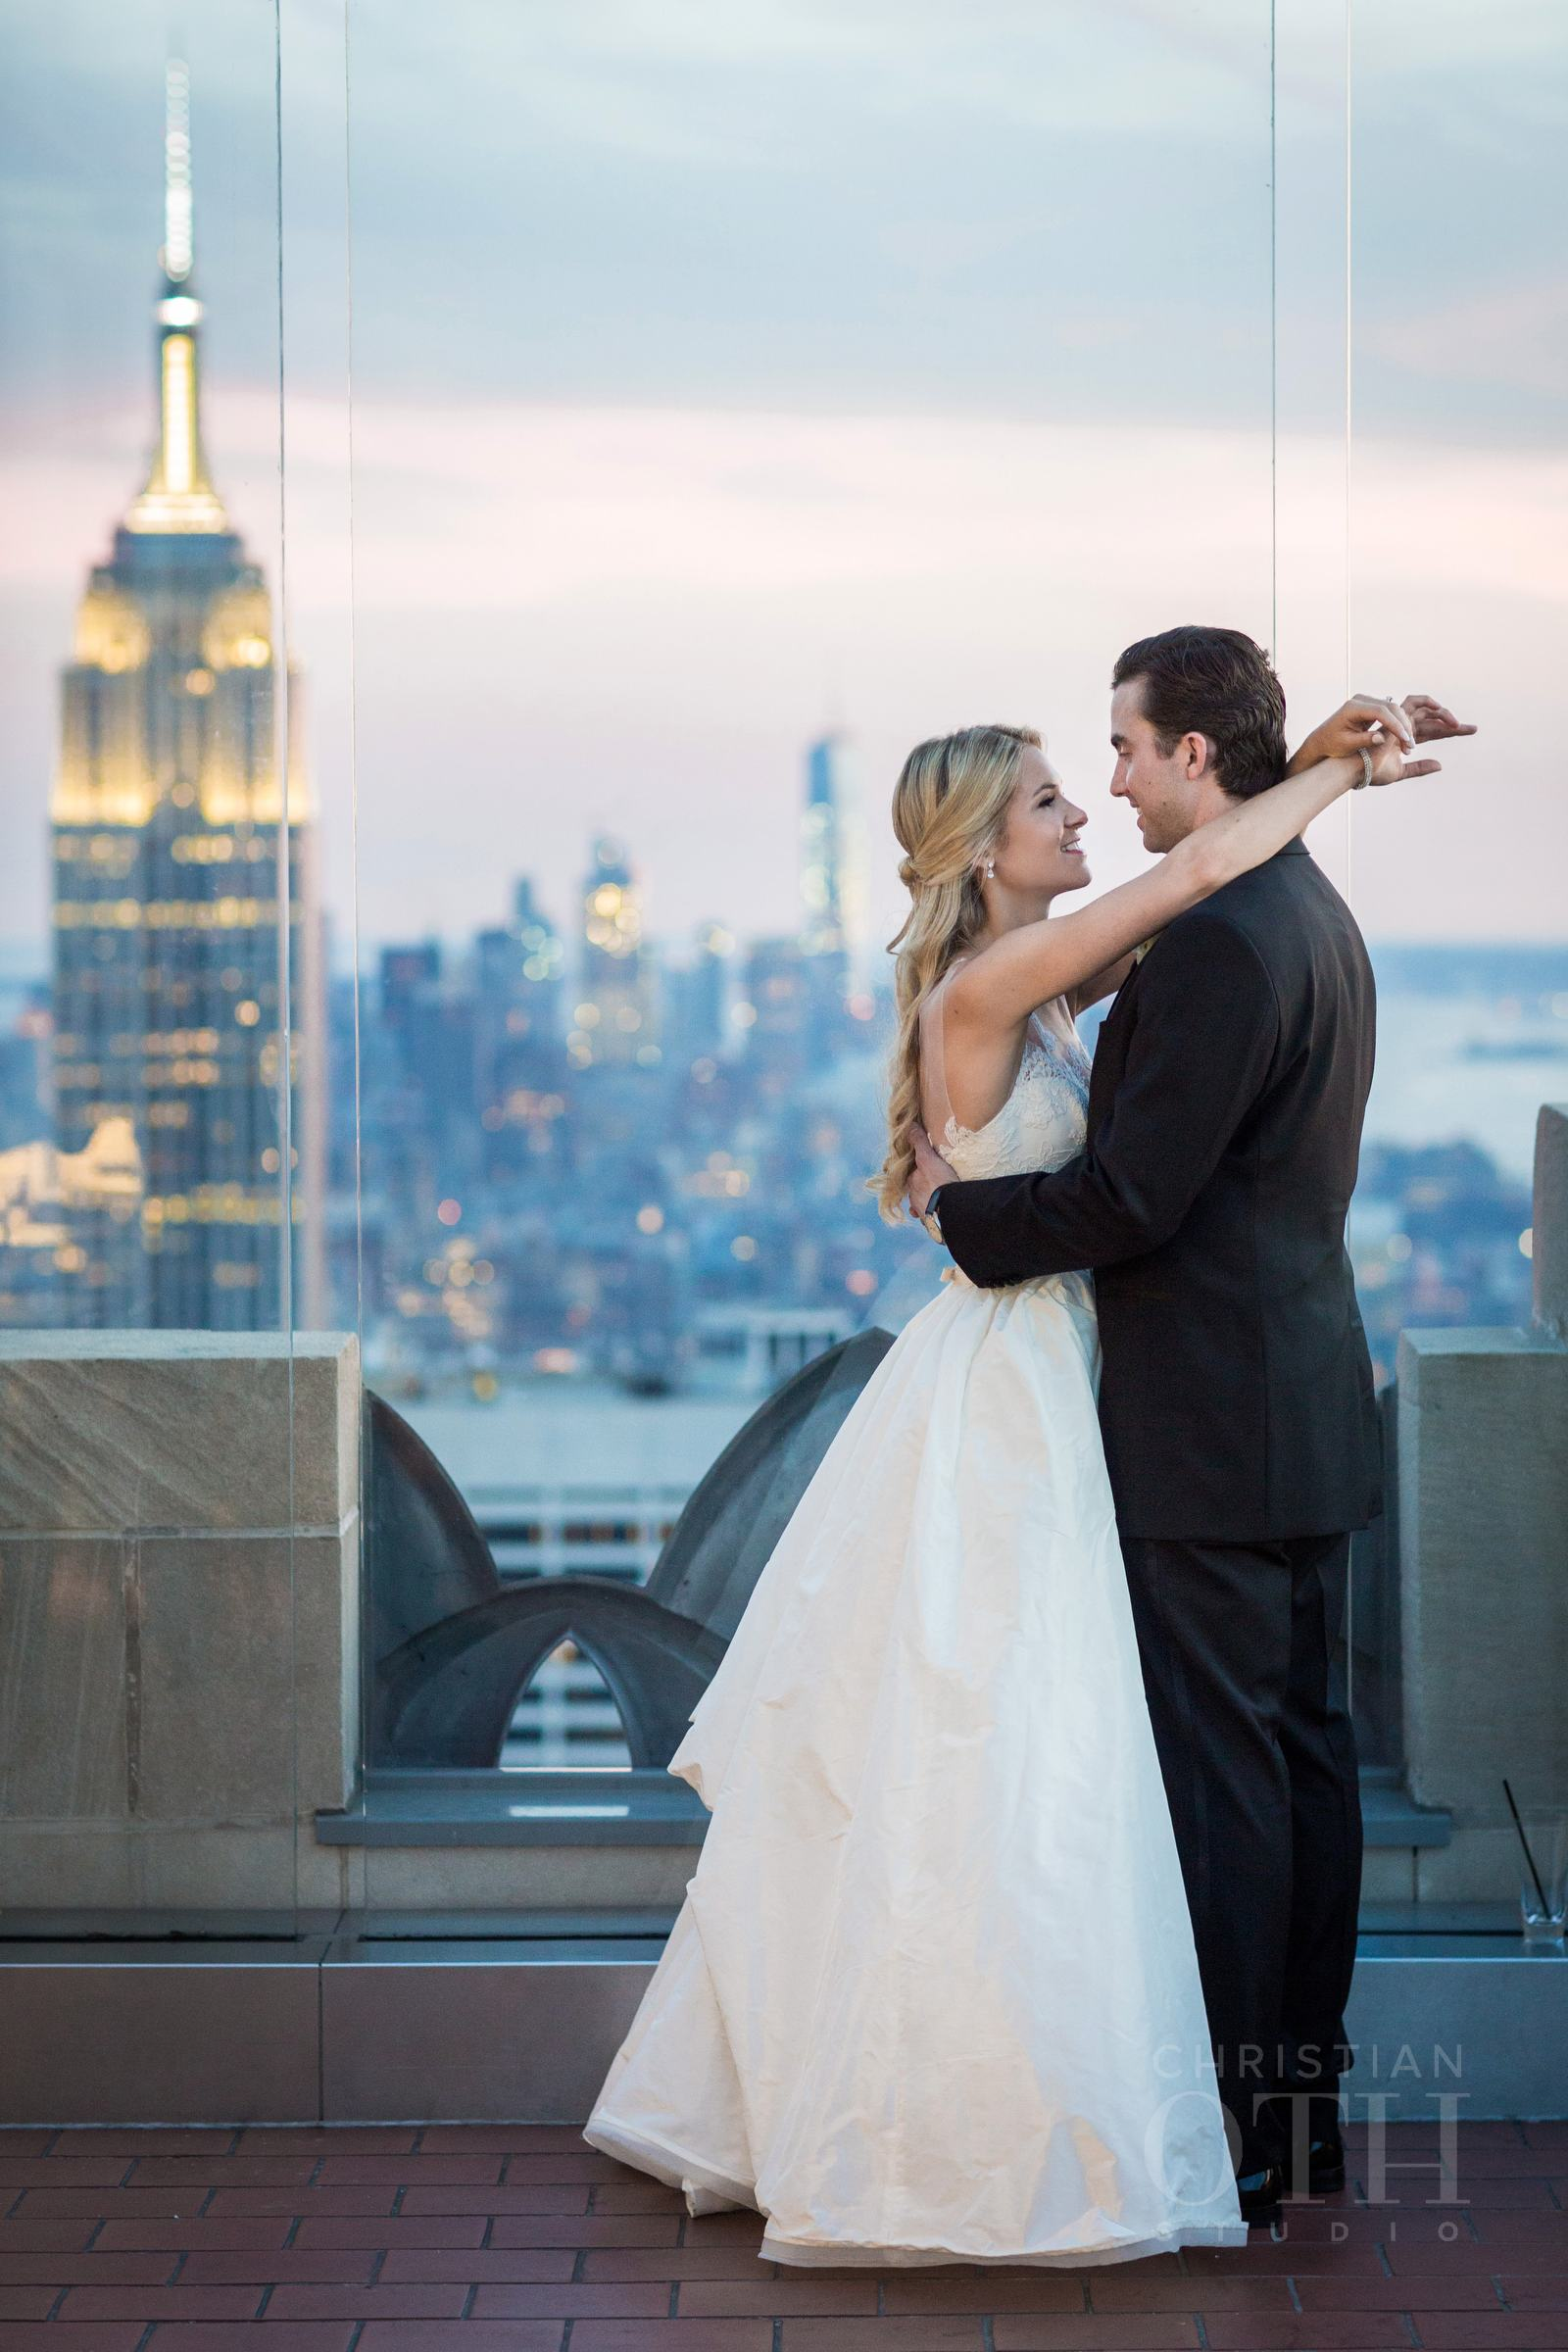 The Rainbow Room has the best views!  Photo by Christian Oth Studio.